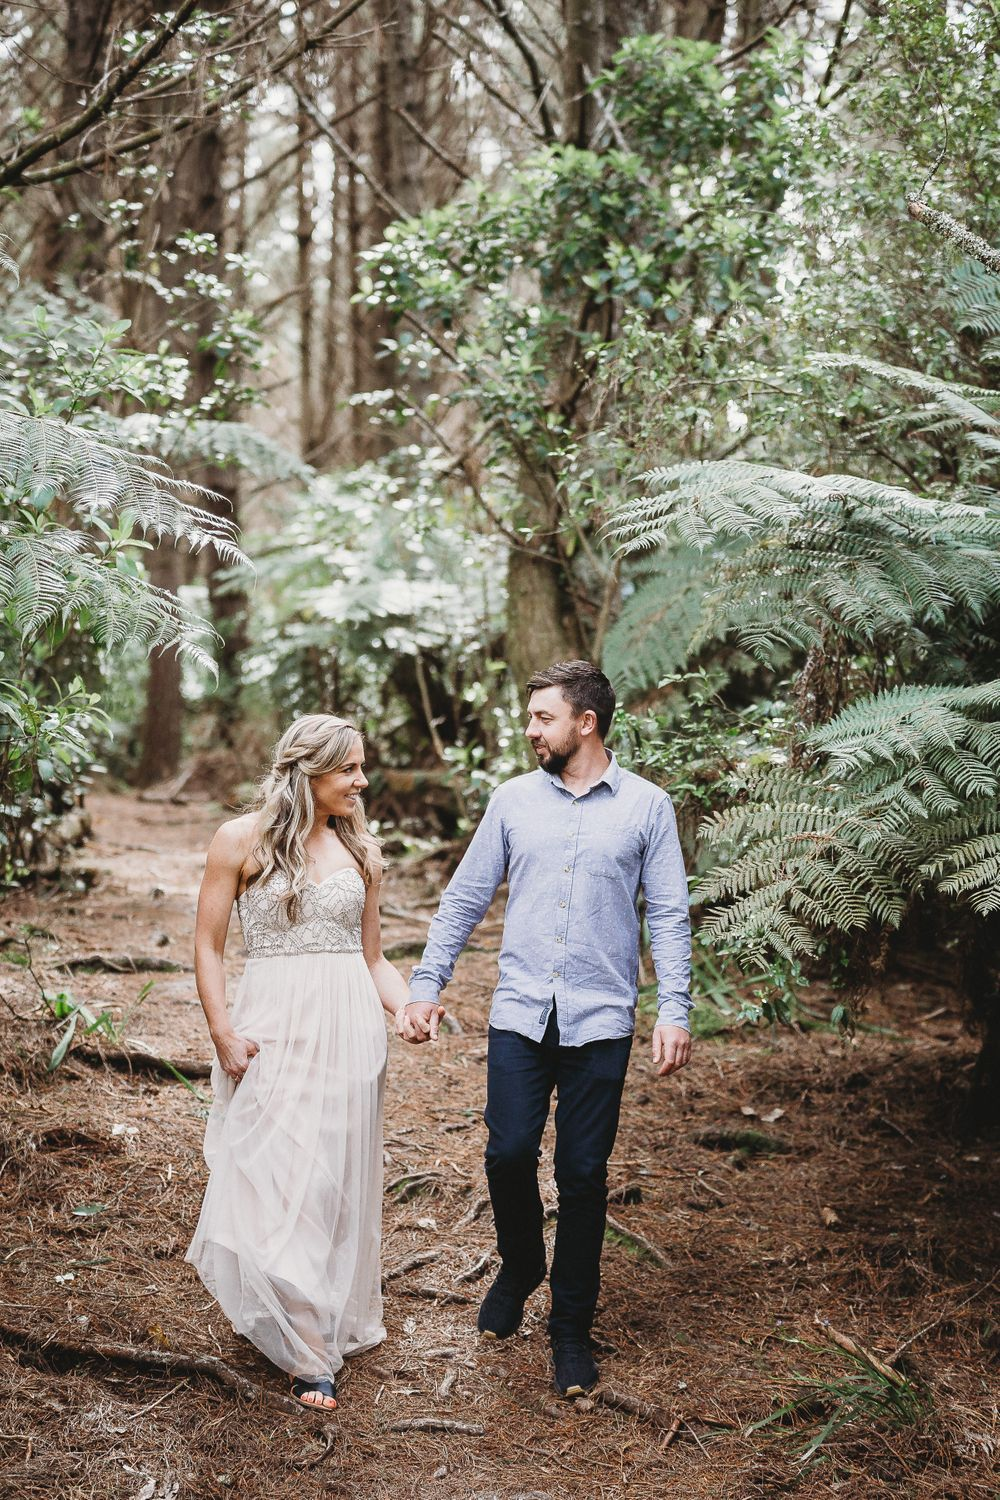 Bridal couple in forest setting